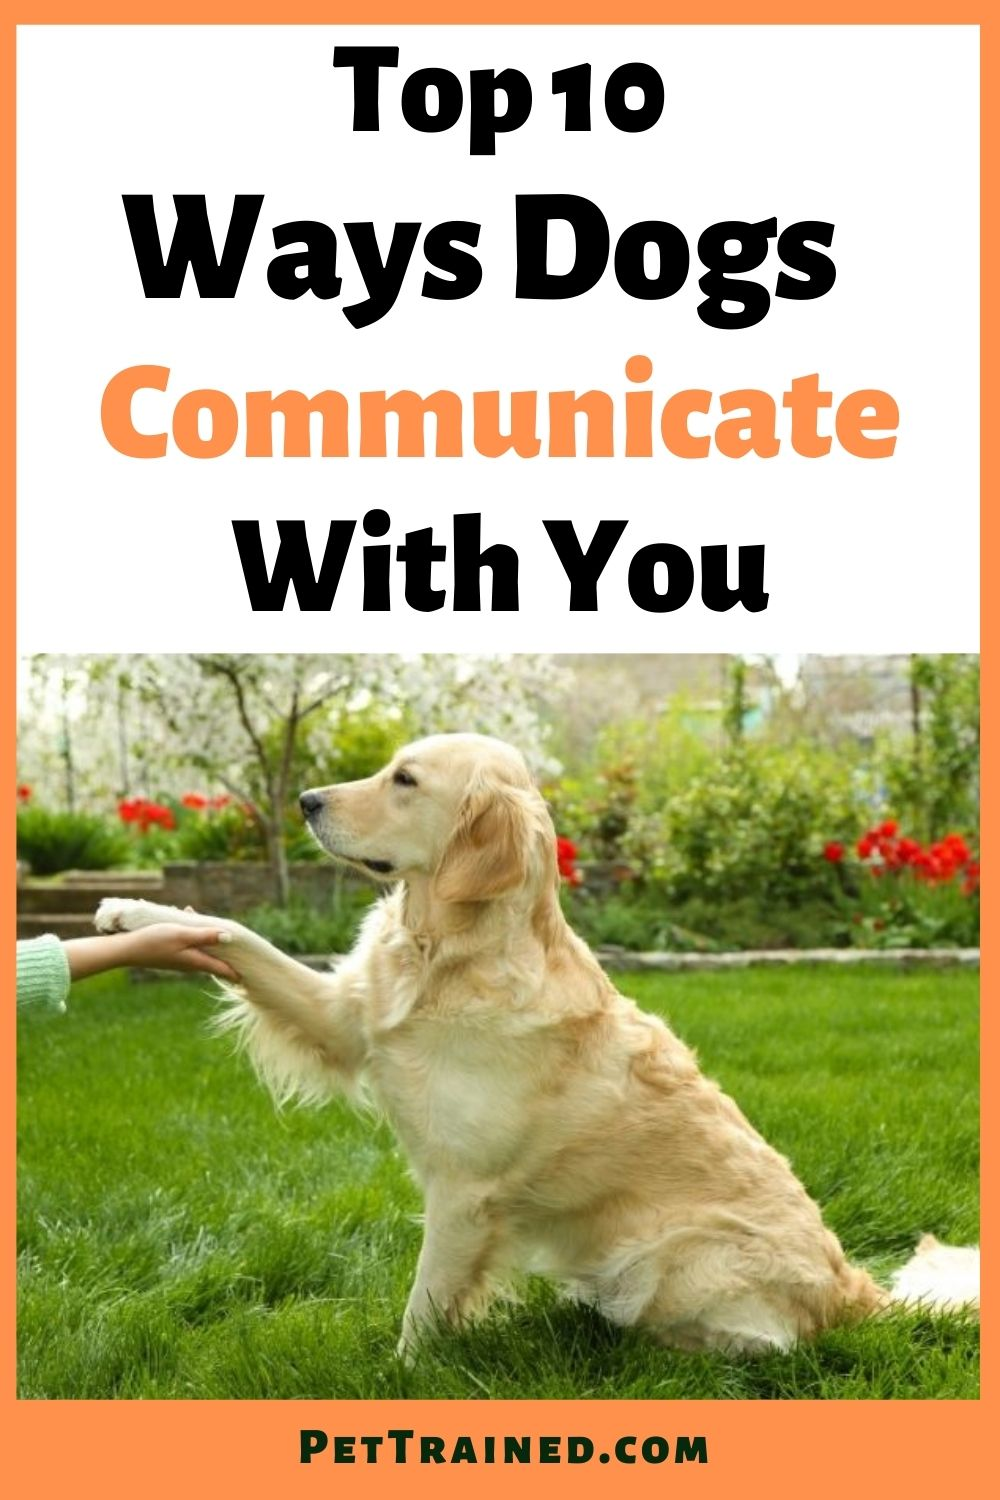 Top 10 ways dogs communicate with you